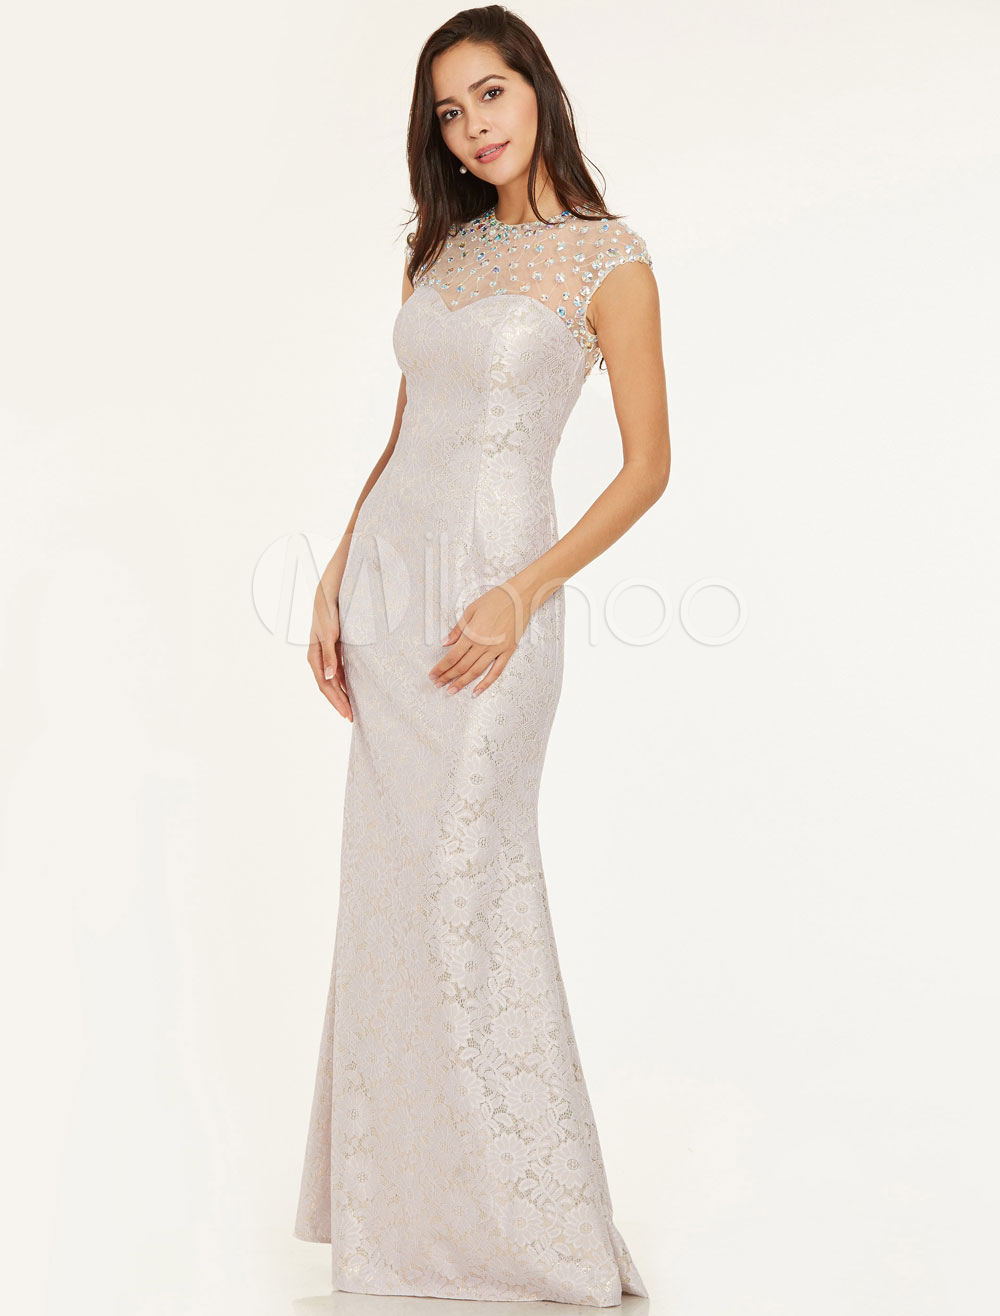 Buy Lace Prom Dresses Mermaid Ivory Evening Dress Sleeveless Beading Floor Length Formal Gowns for $88.99 in Milanoo store